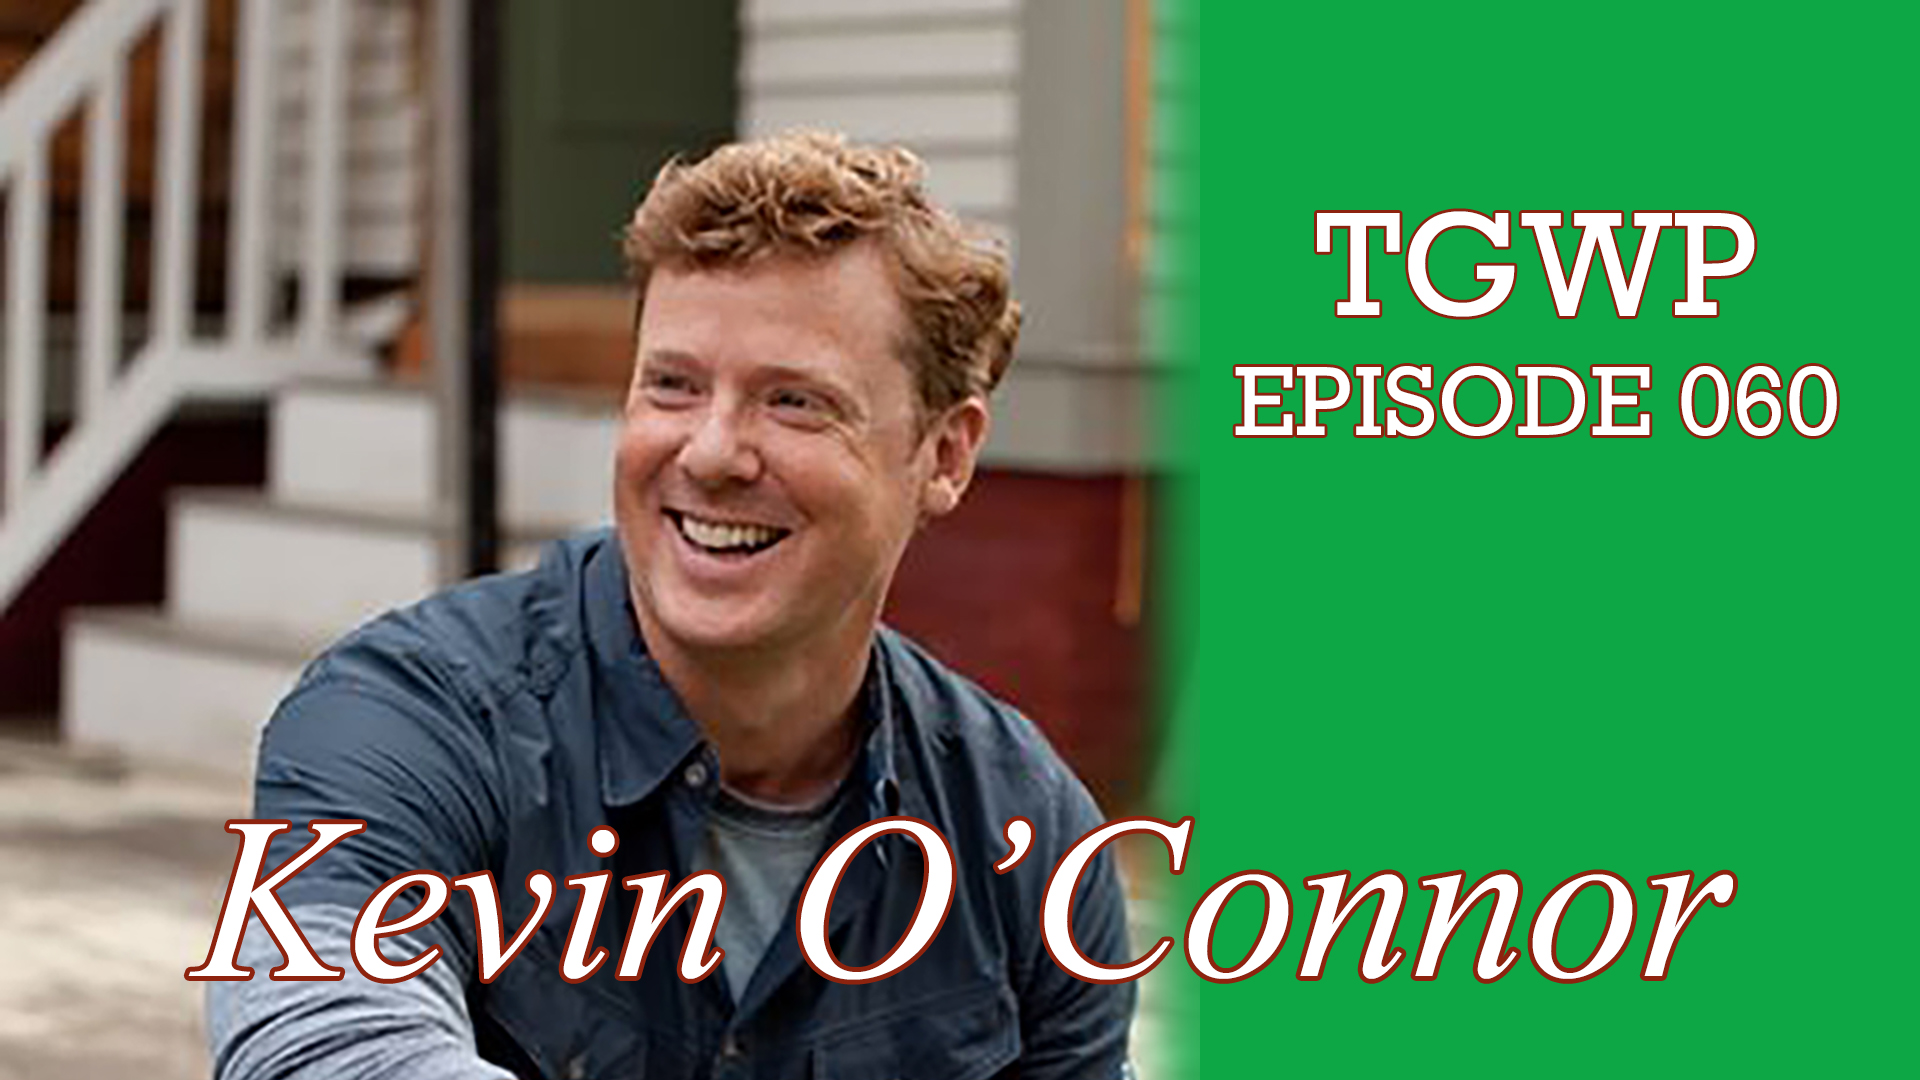 TGWP Episode 060: Kevin O'Connor- This Old House- Ask This Old House